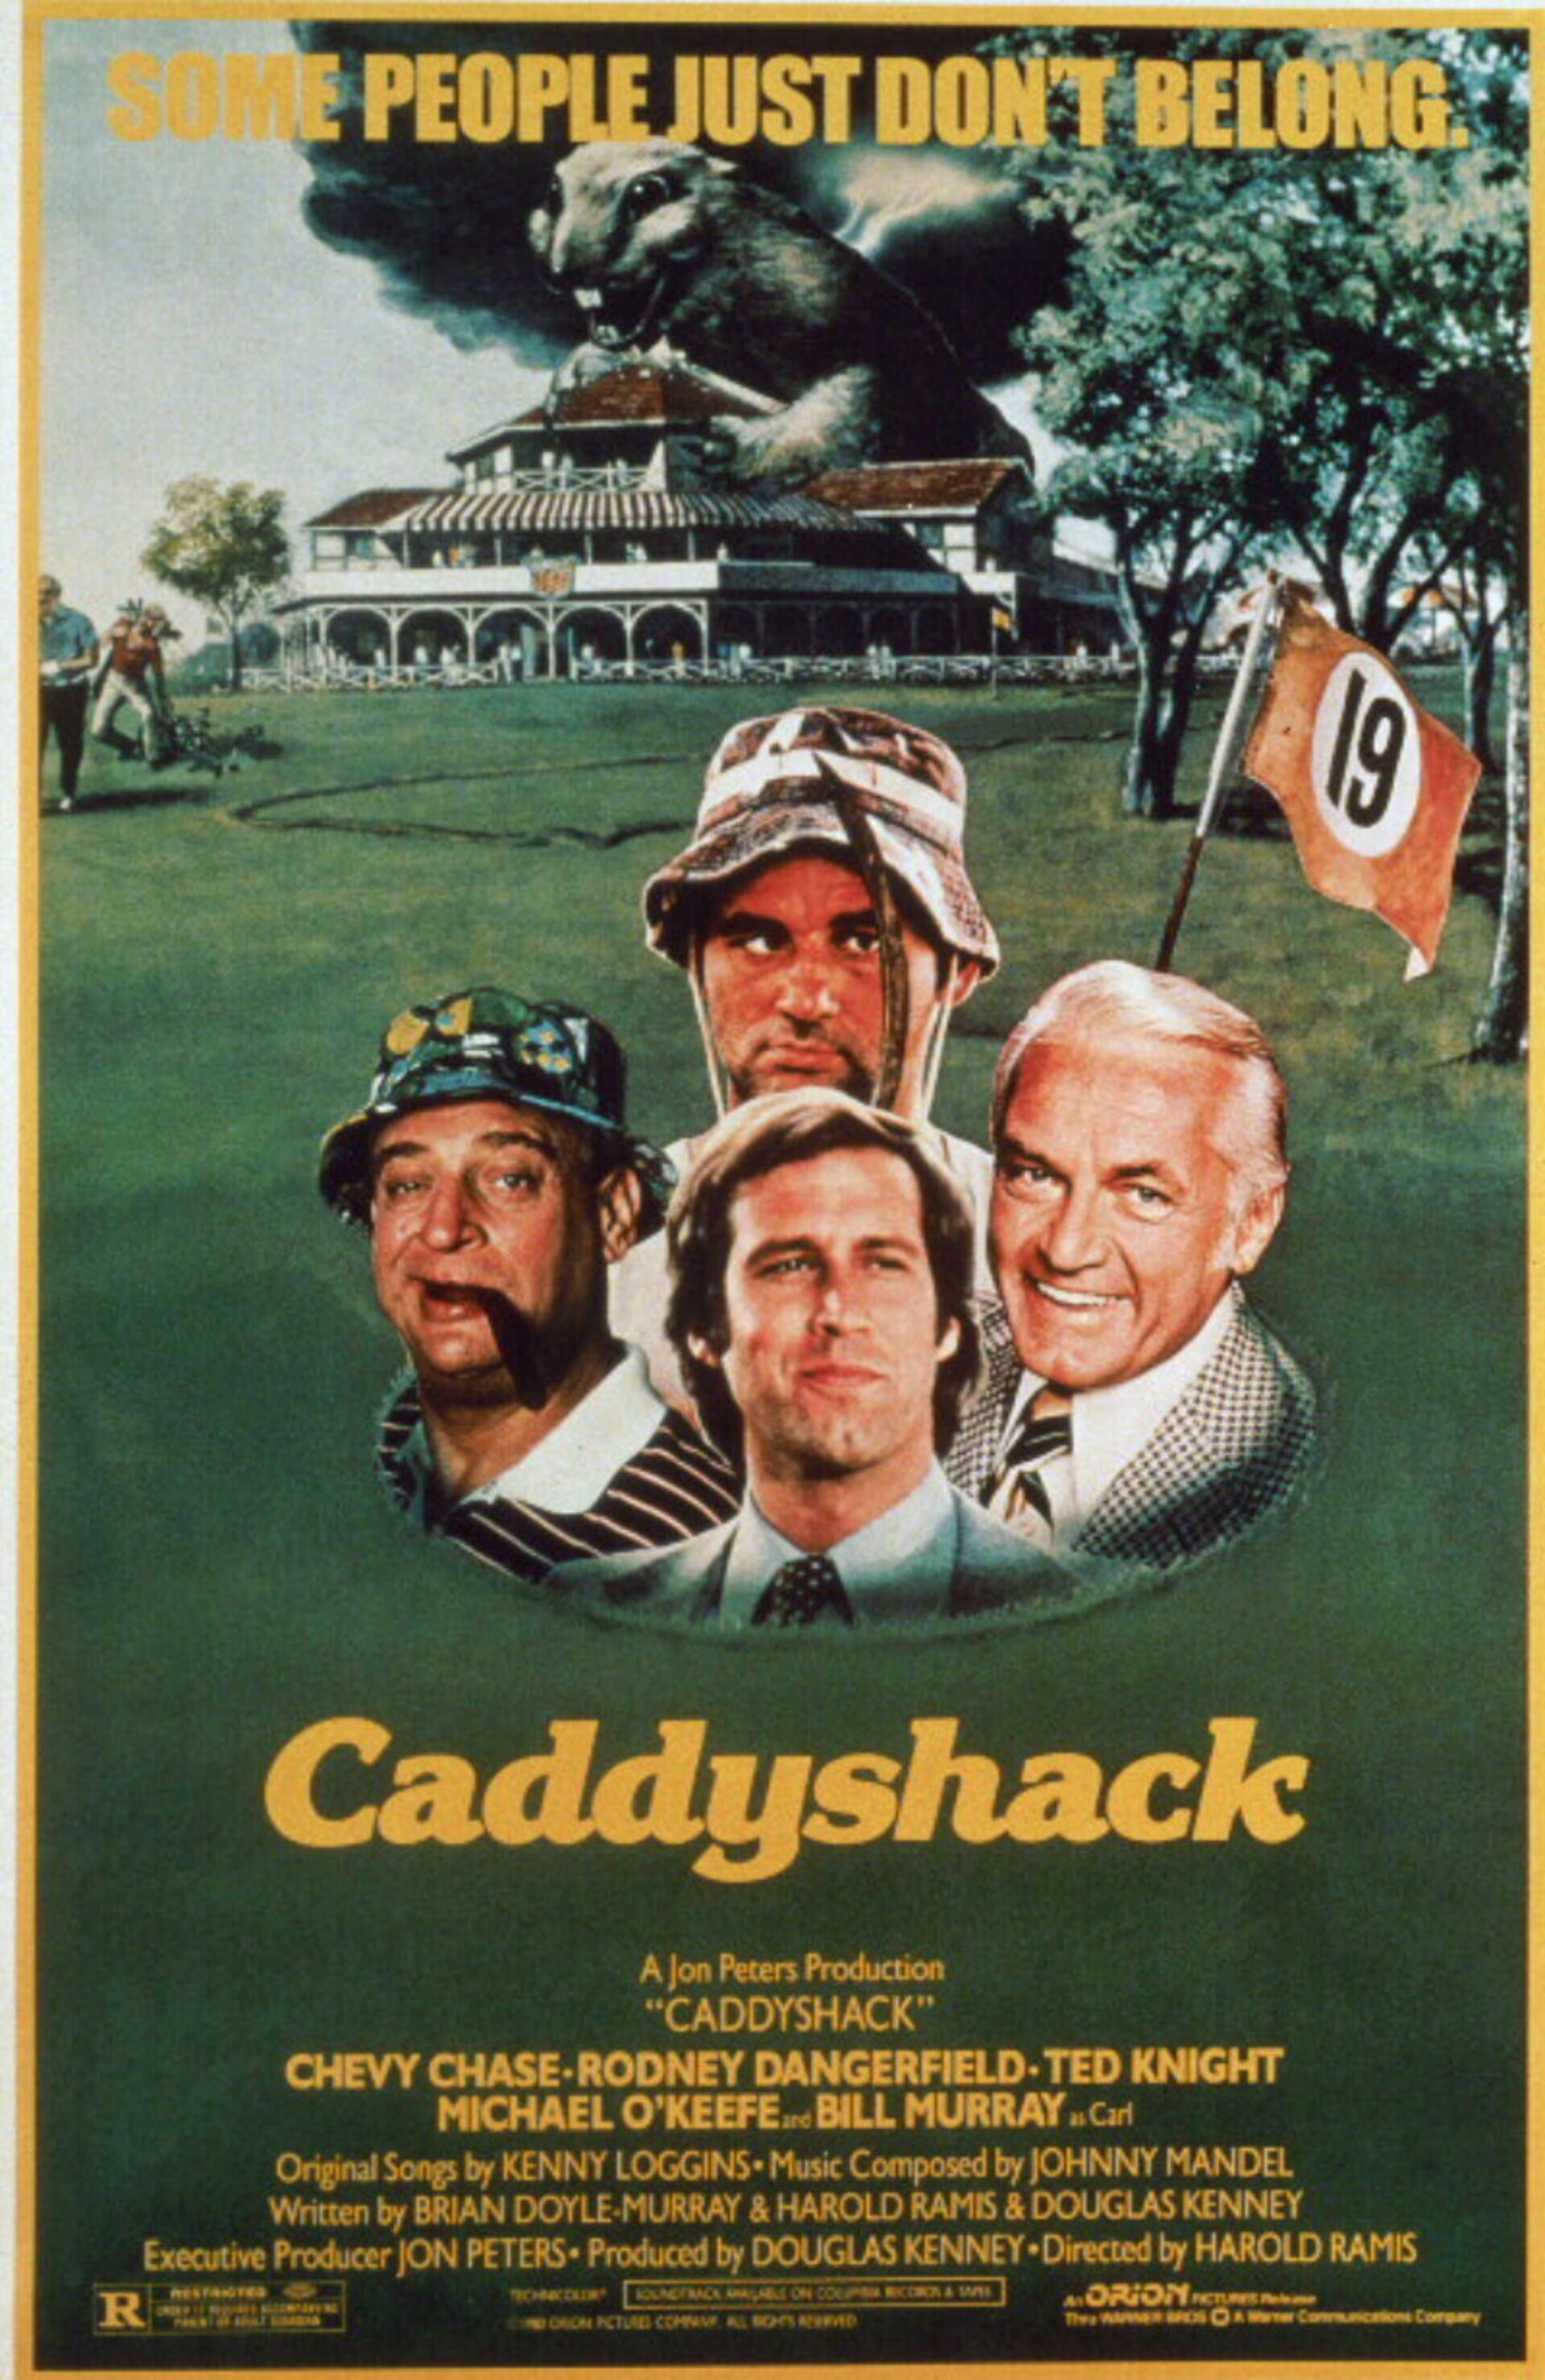 Caddyshack - Poster 1